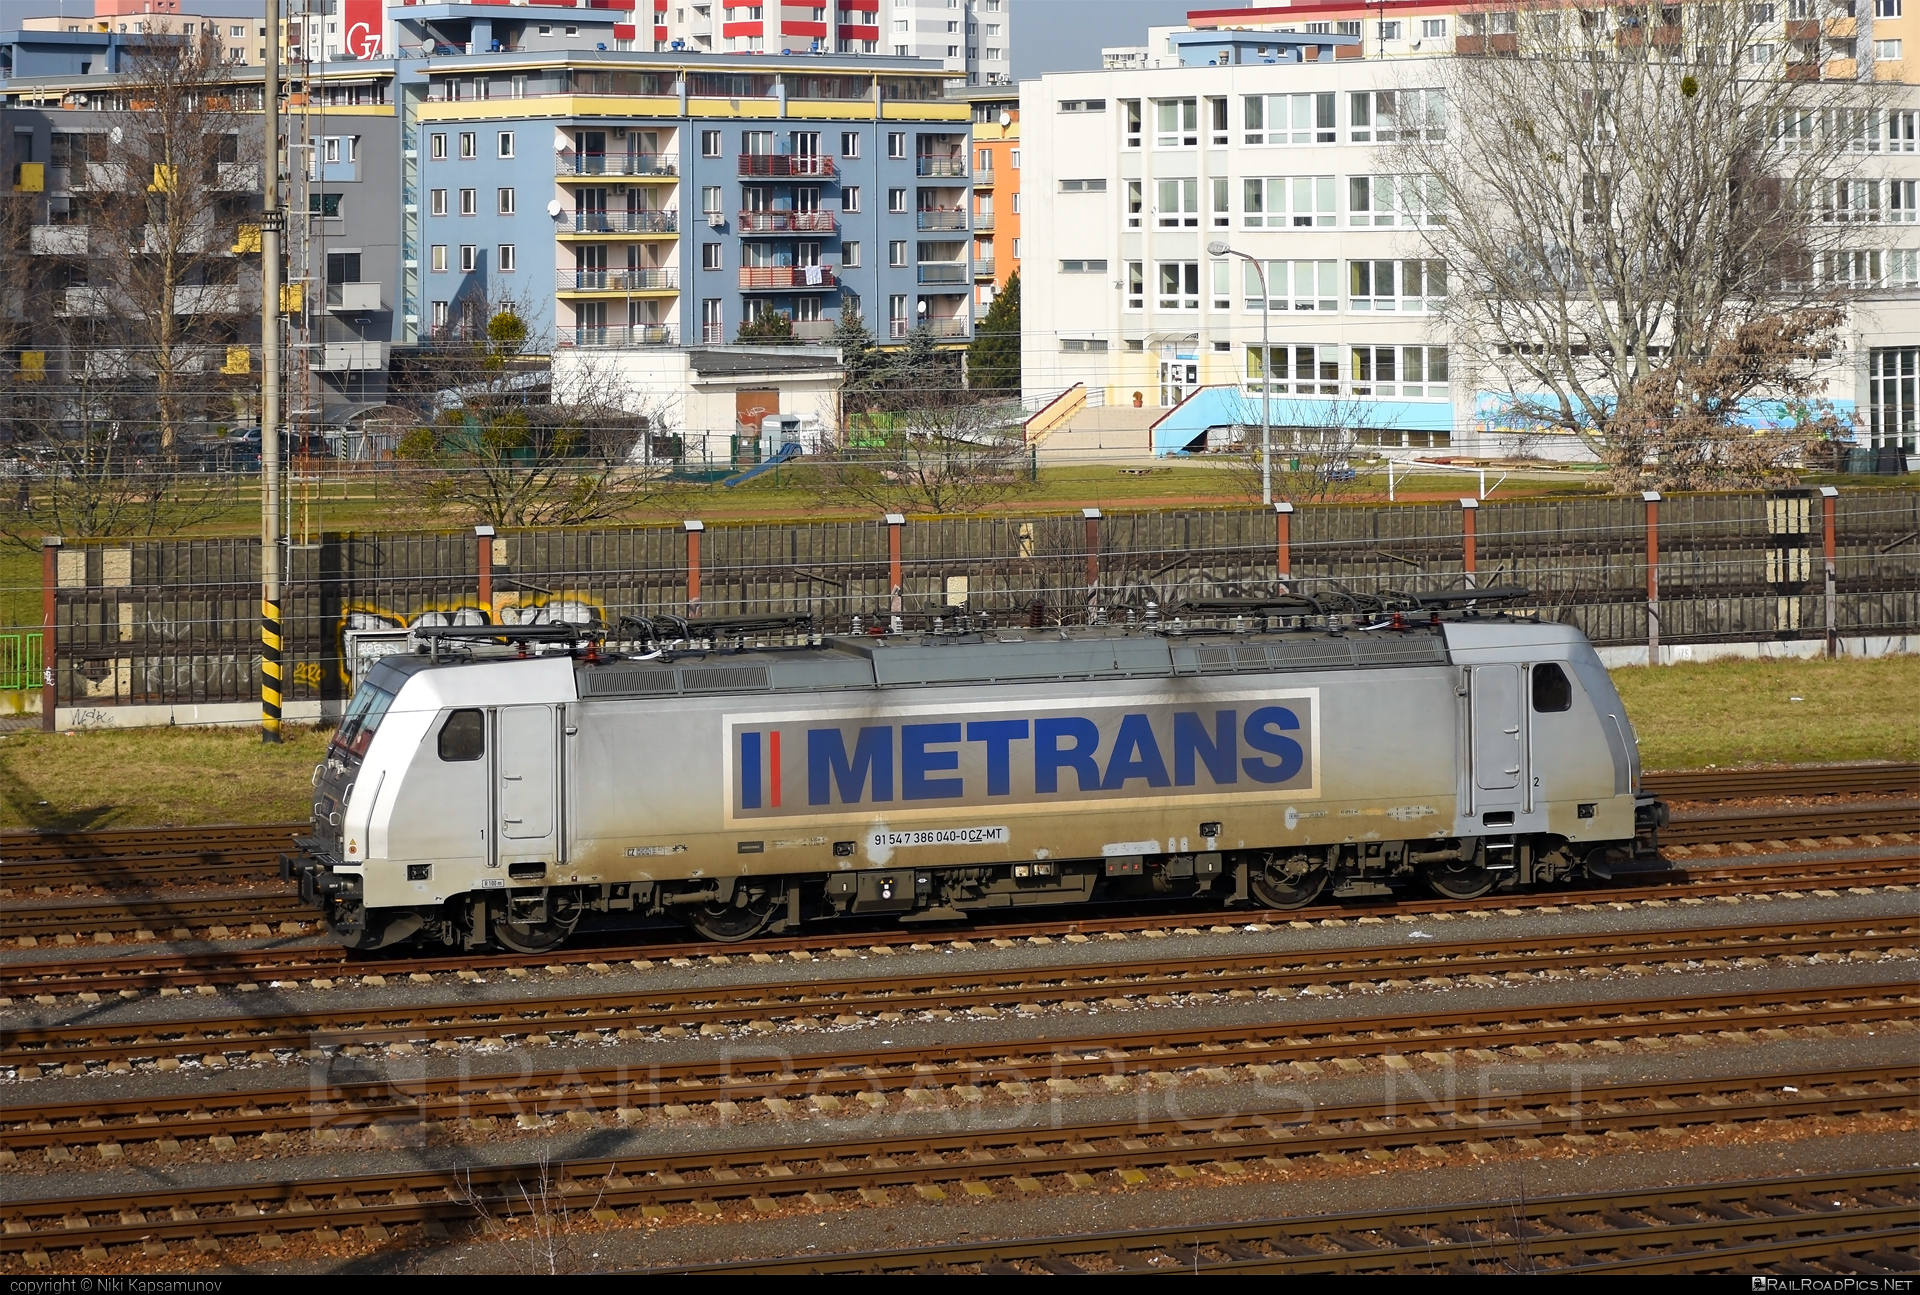 Bombardier TRAXX F140 MS - 386 040-0 operated by METRANS Rail s.r.o. #bombardier #bombardiertraxx #hhla #metrans #metransrail #traxx #traxxf140 #traxxf140ms